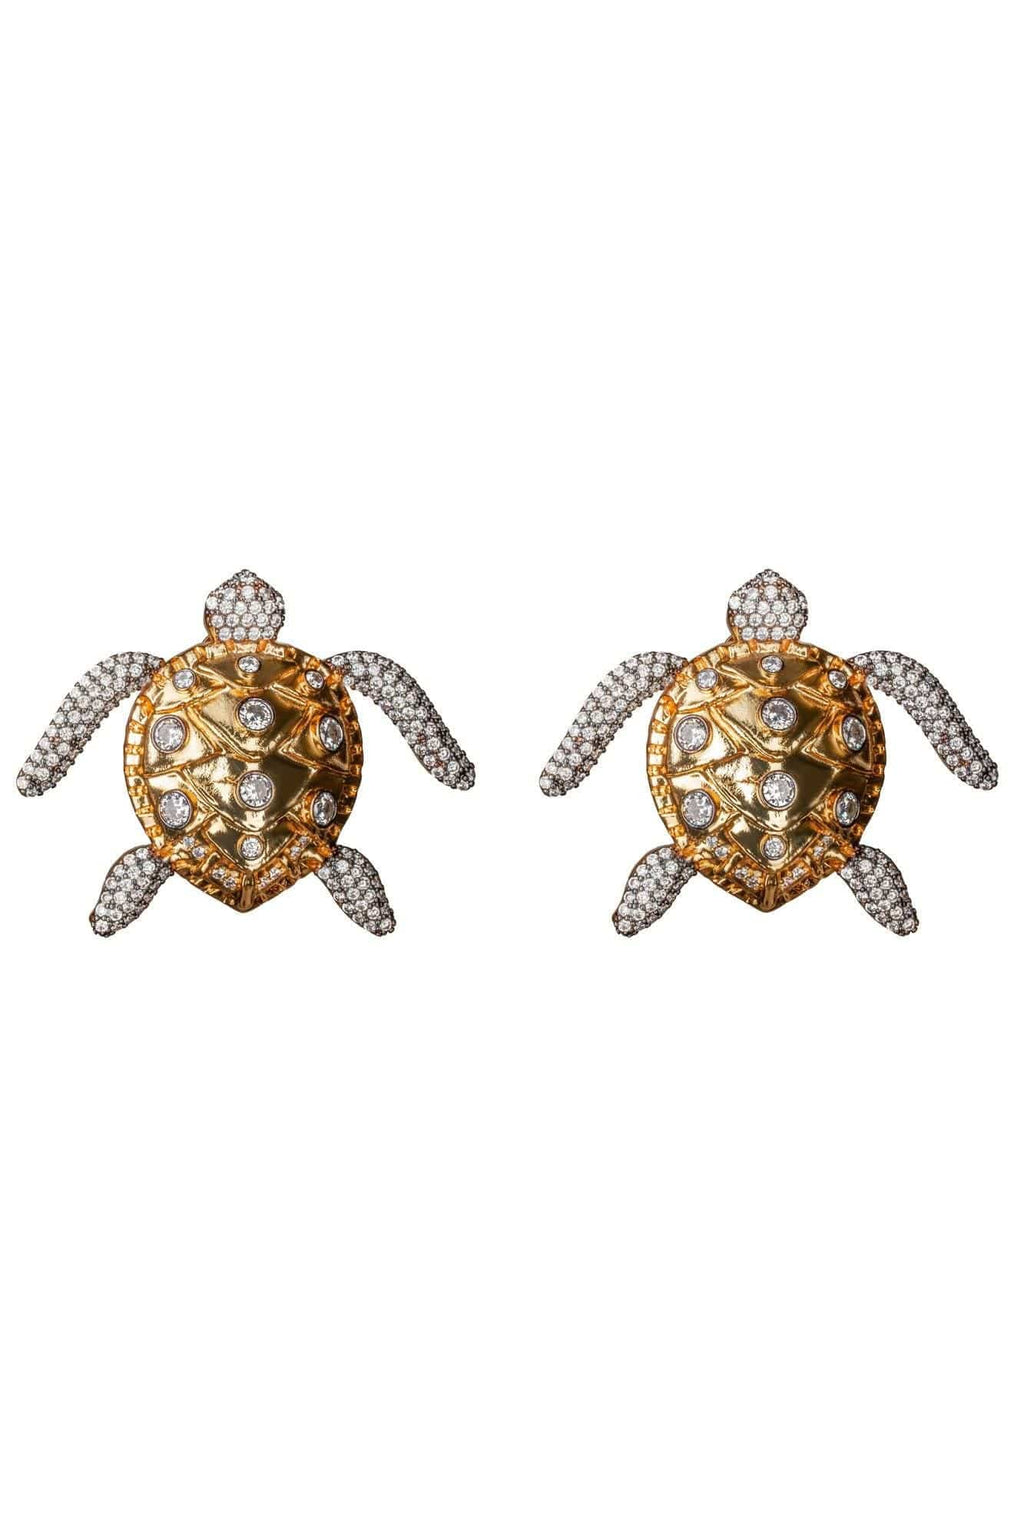 Sea Turtle Crystal Earrings - BYTRIBUTE